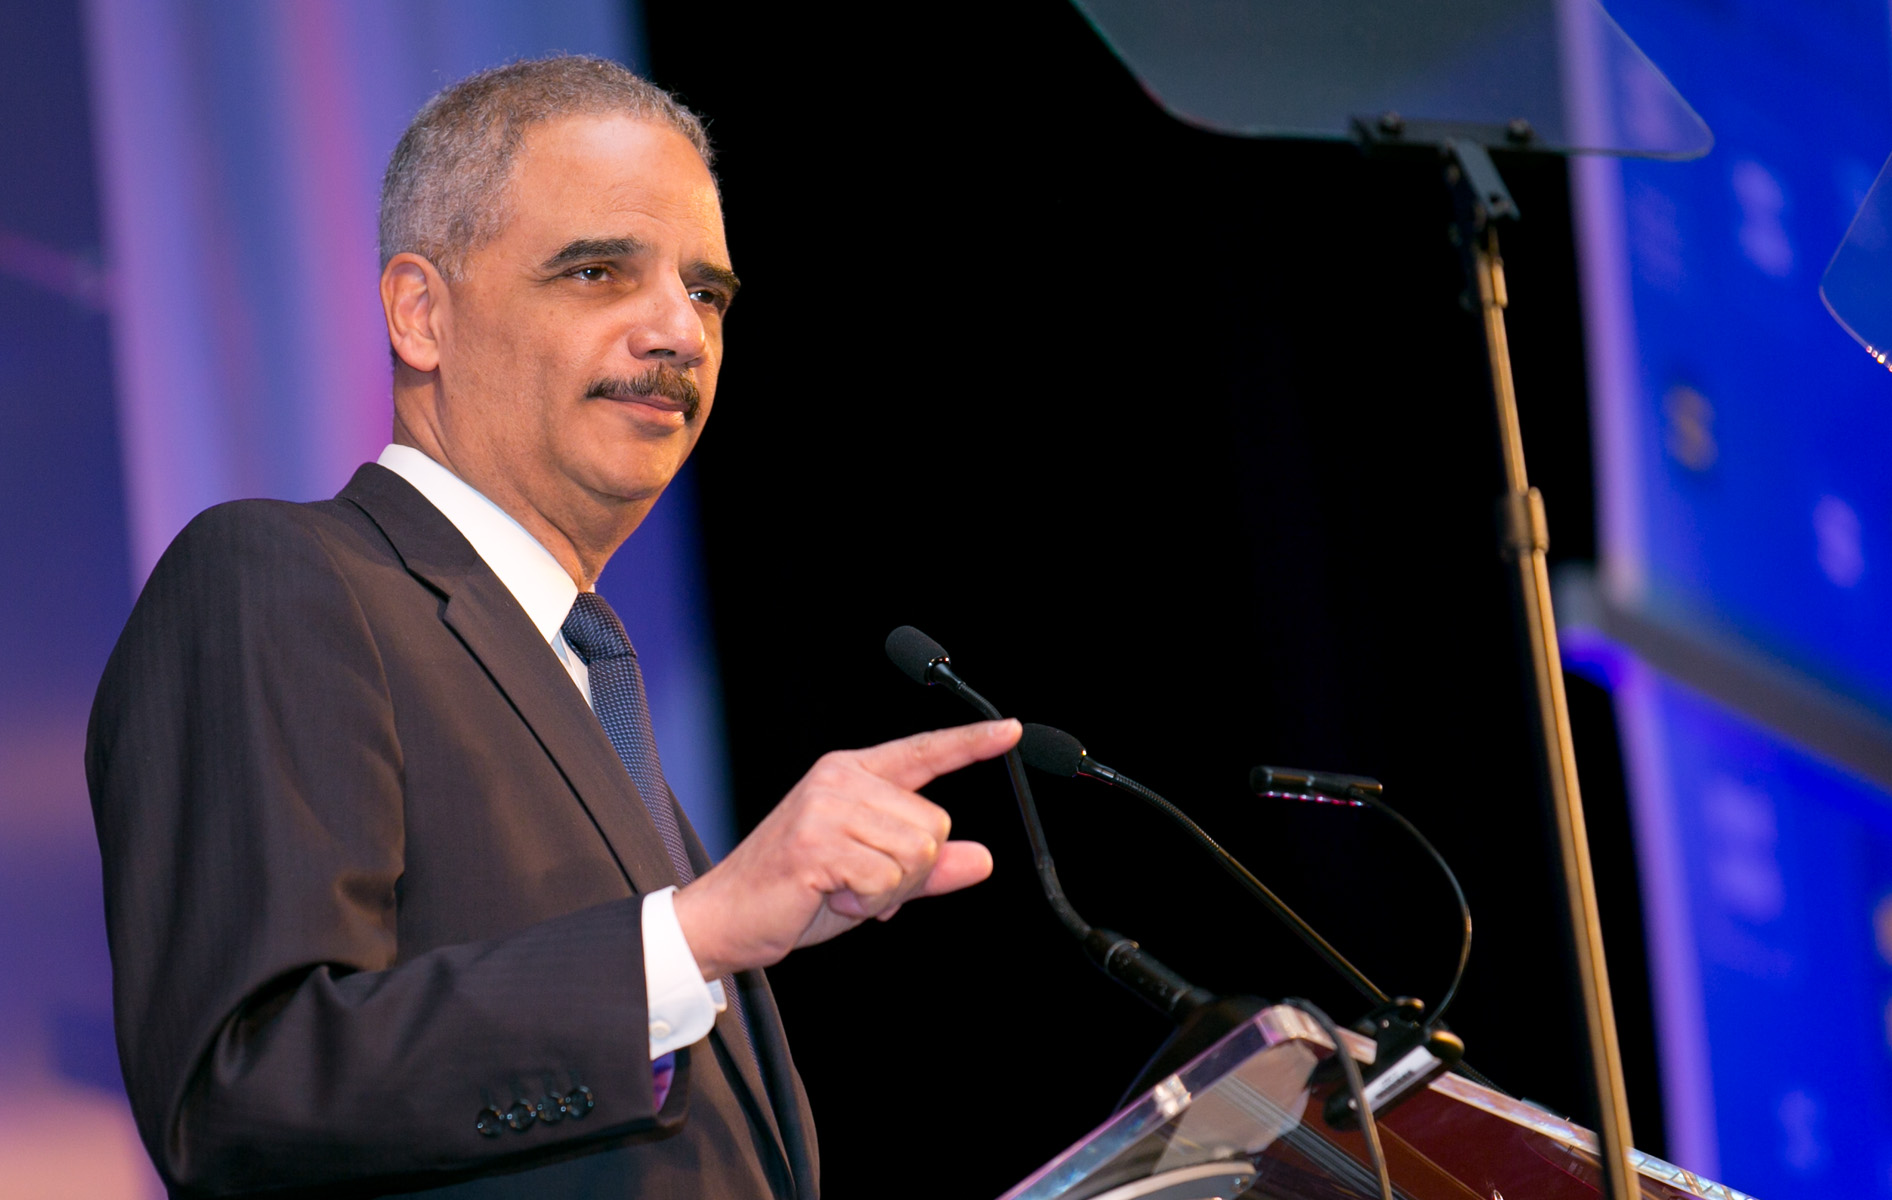 new york event photographer-EricHolder, U.S Attorney Generall-Human Rights Campaign Gala-Jeffrey Holmes New York Photographer